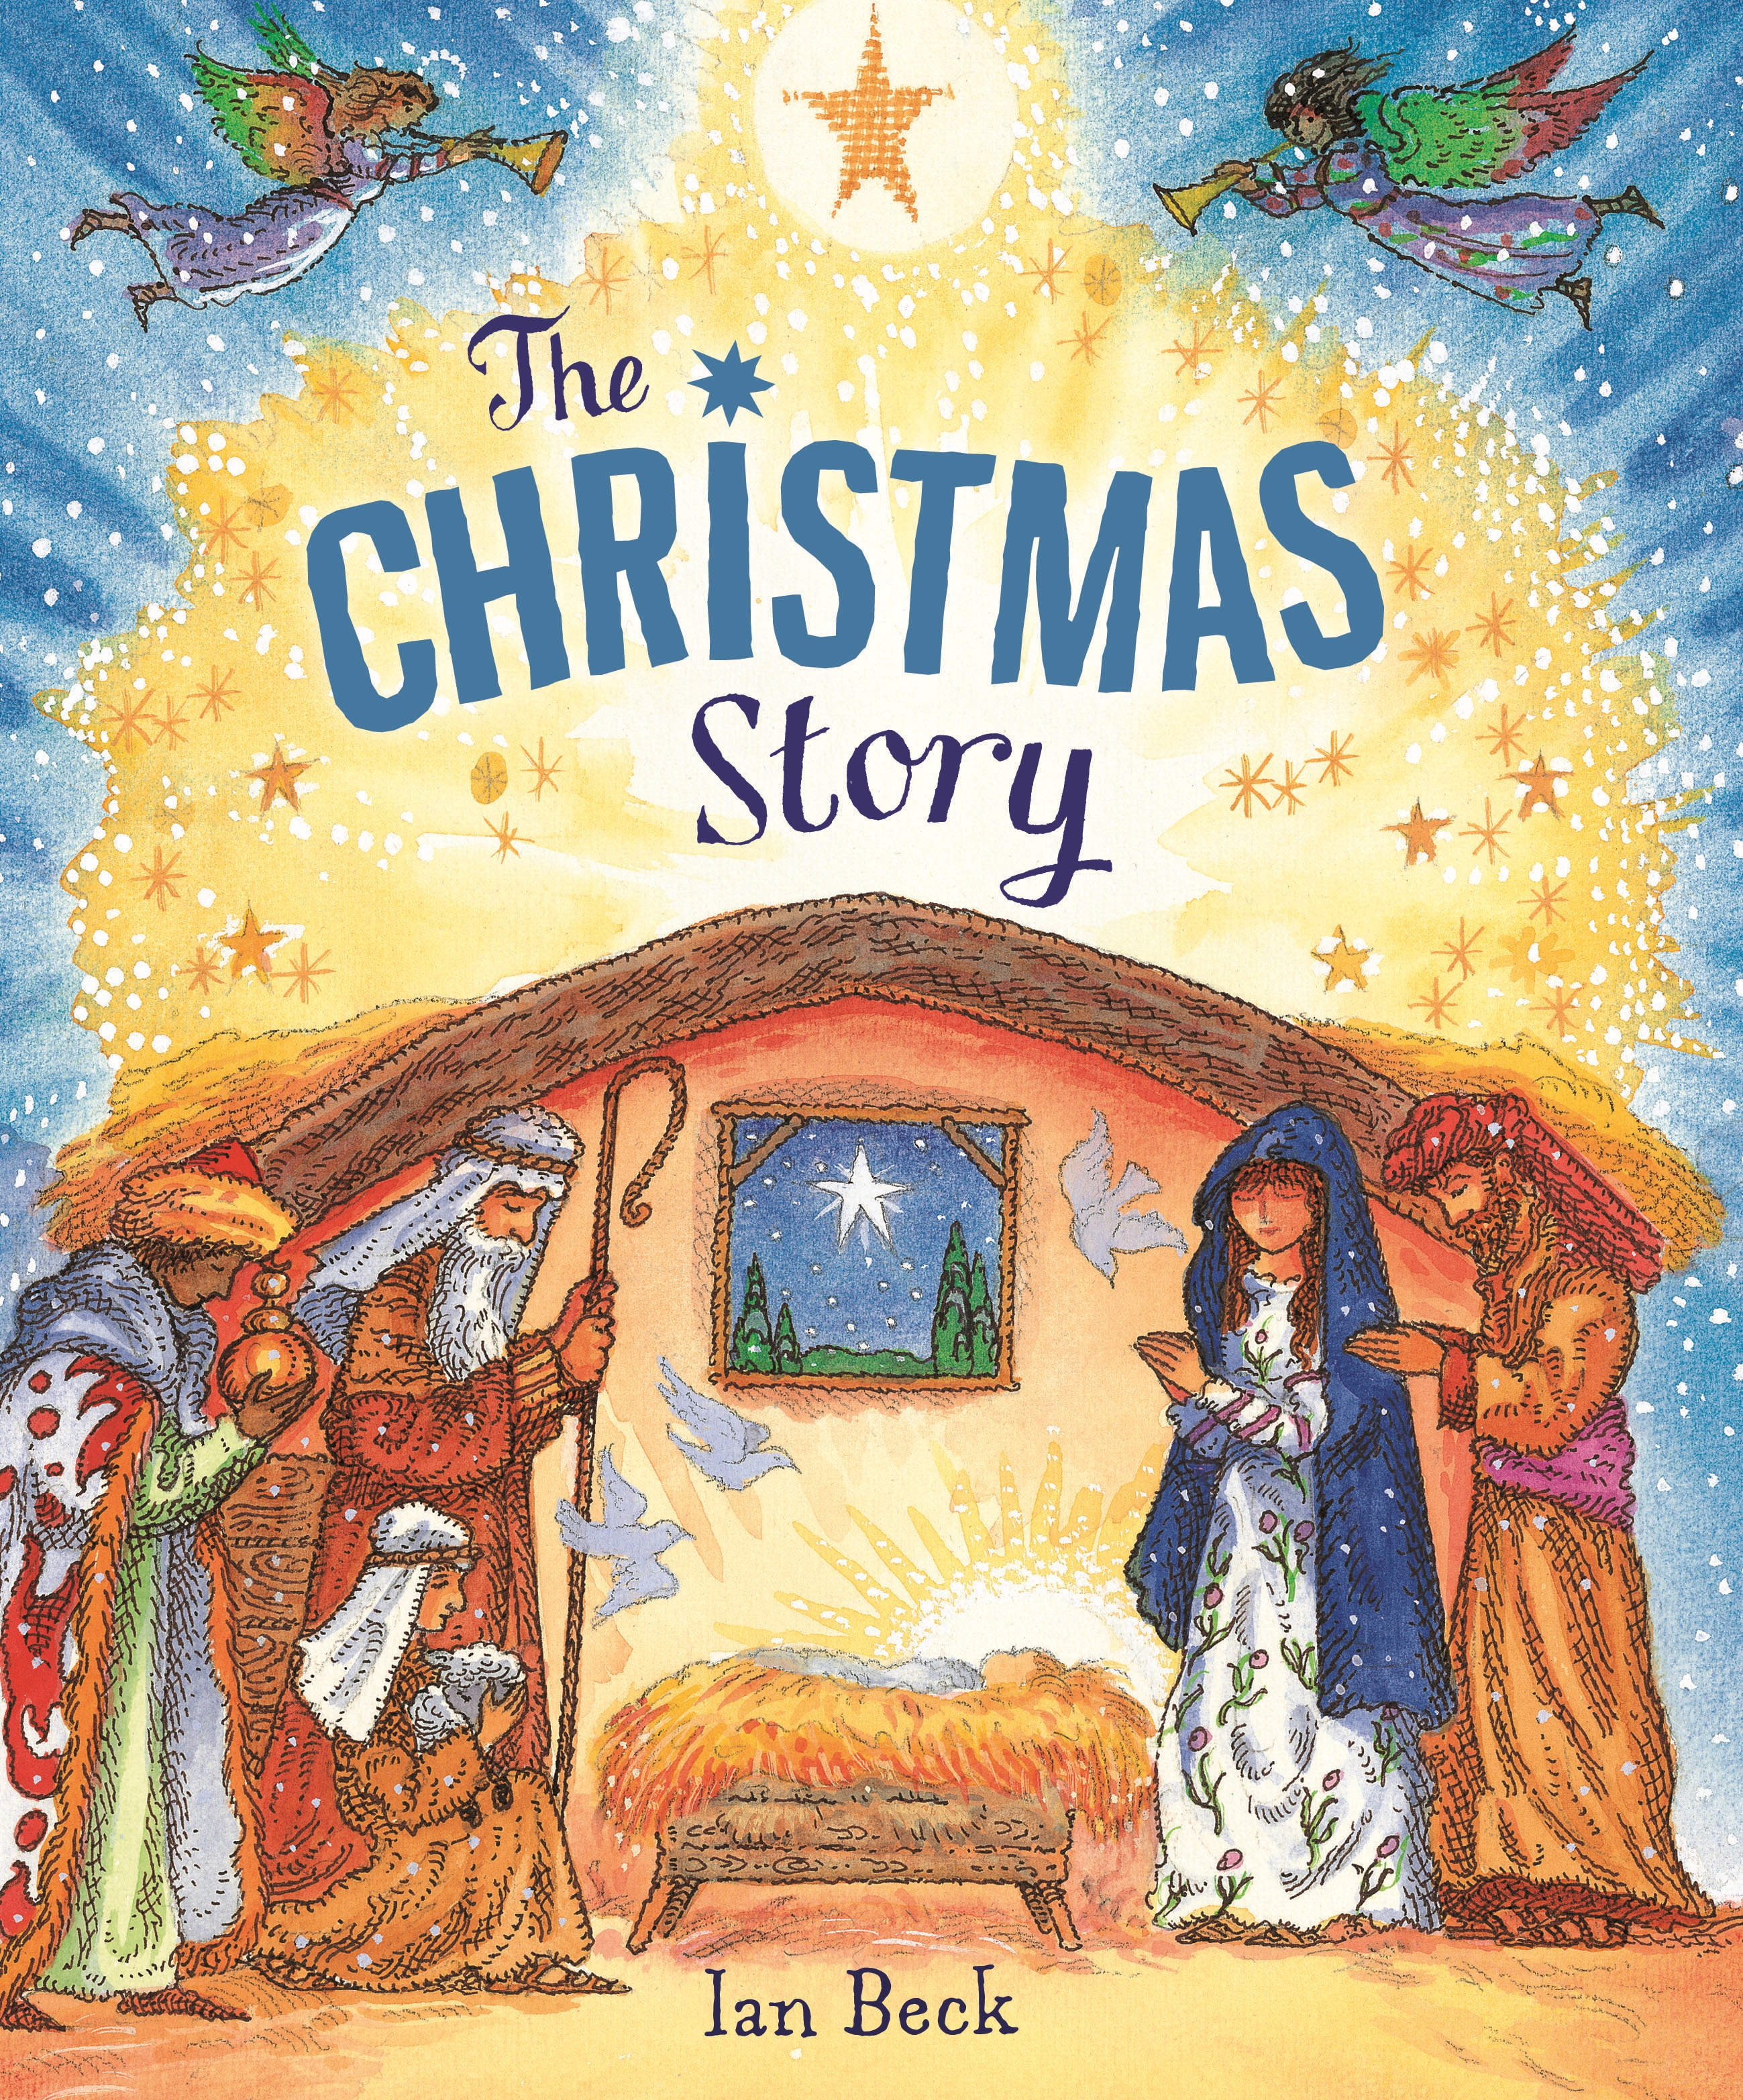 The Christmas Story Book.The Christmas Story By Ian Beck Penguin Books New Zealand